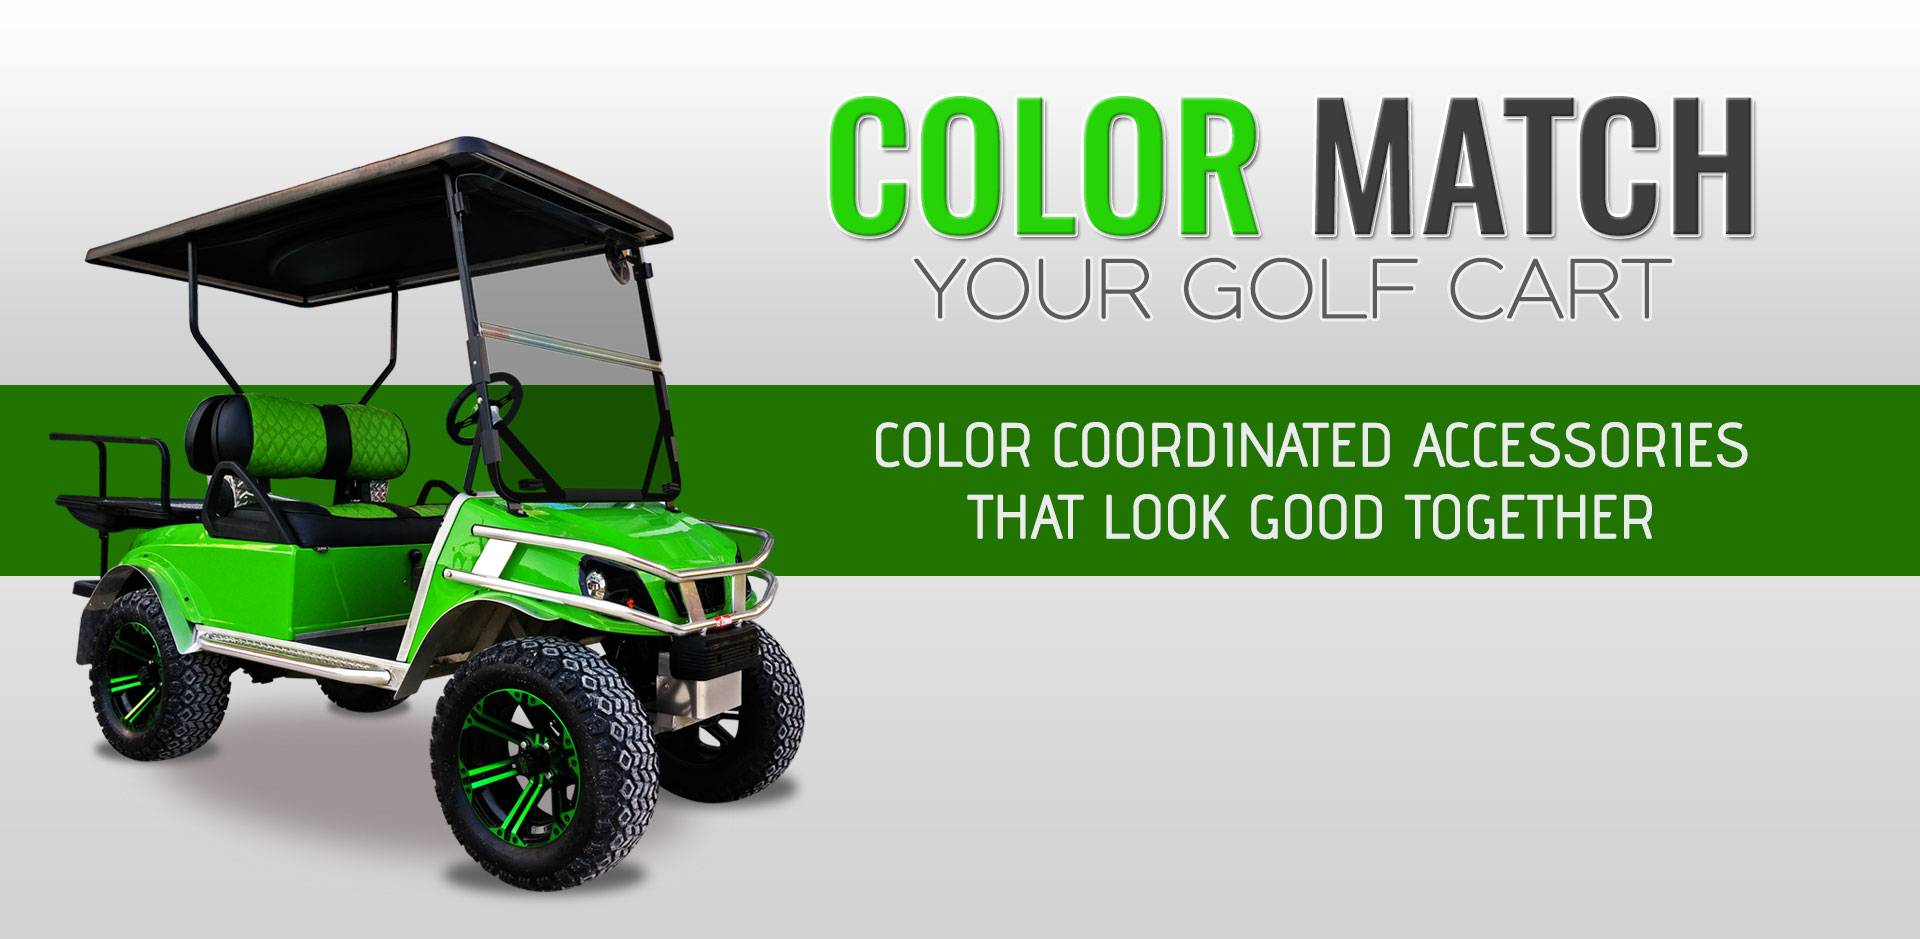 Color Match Your Golf Cart Accessories